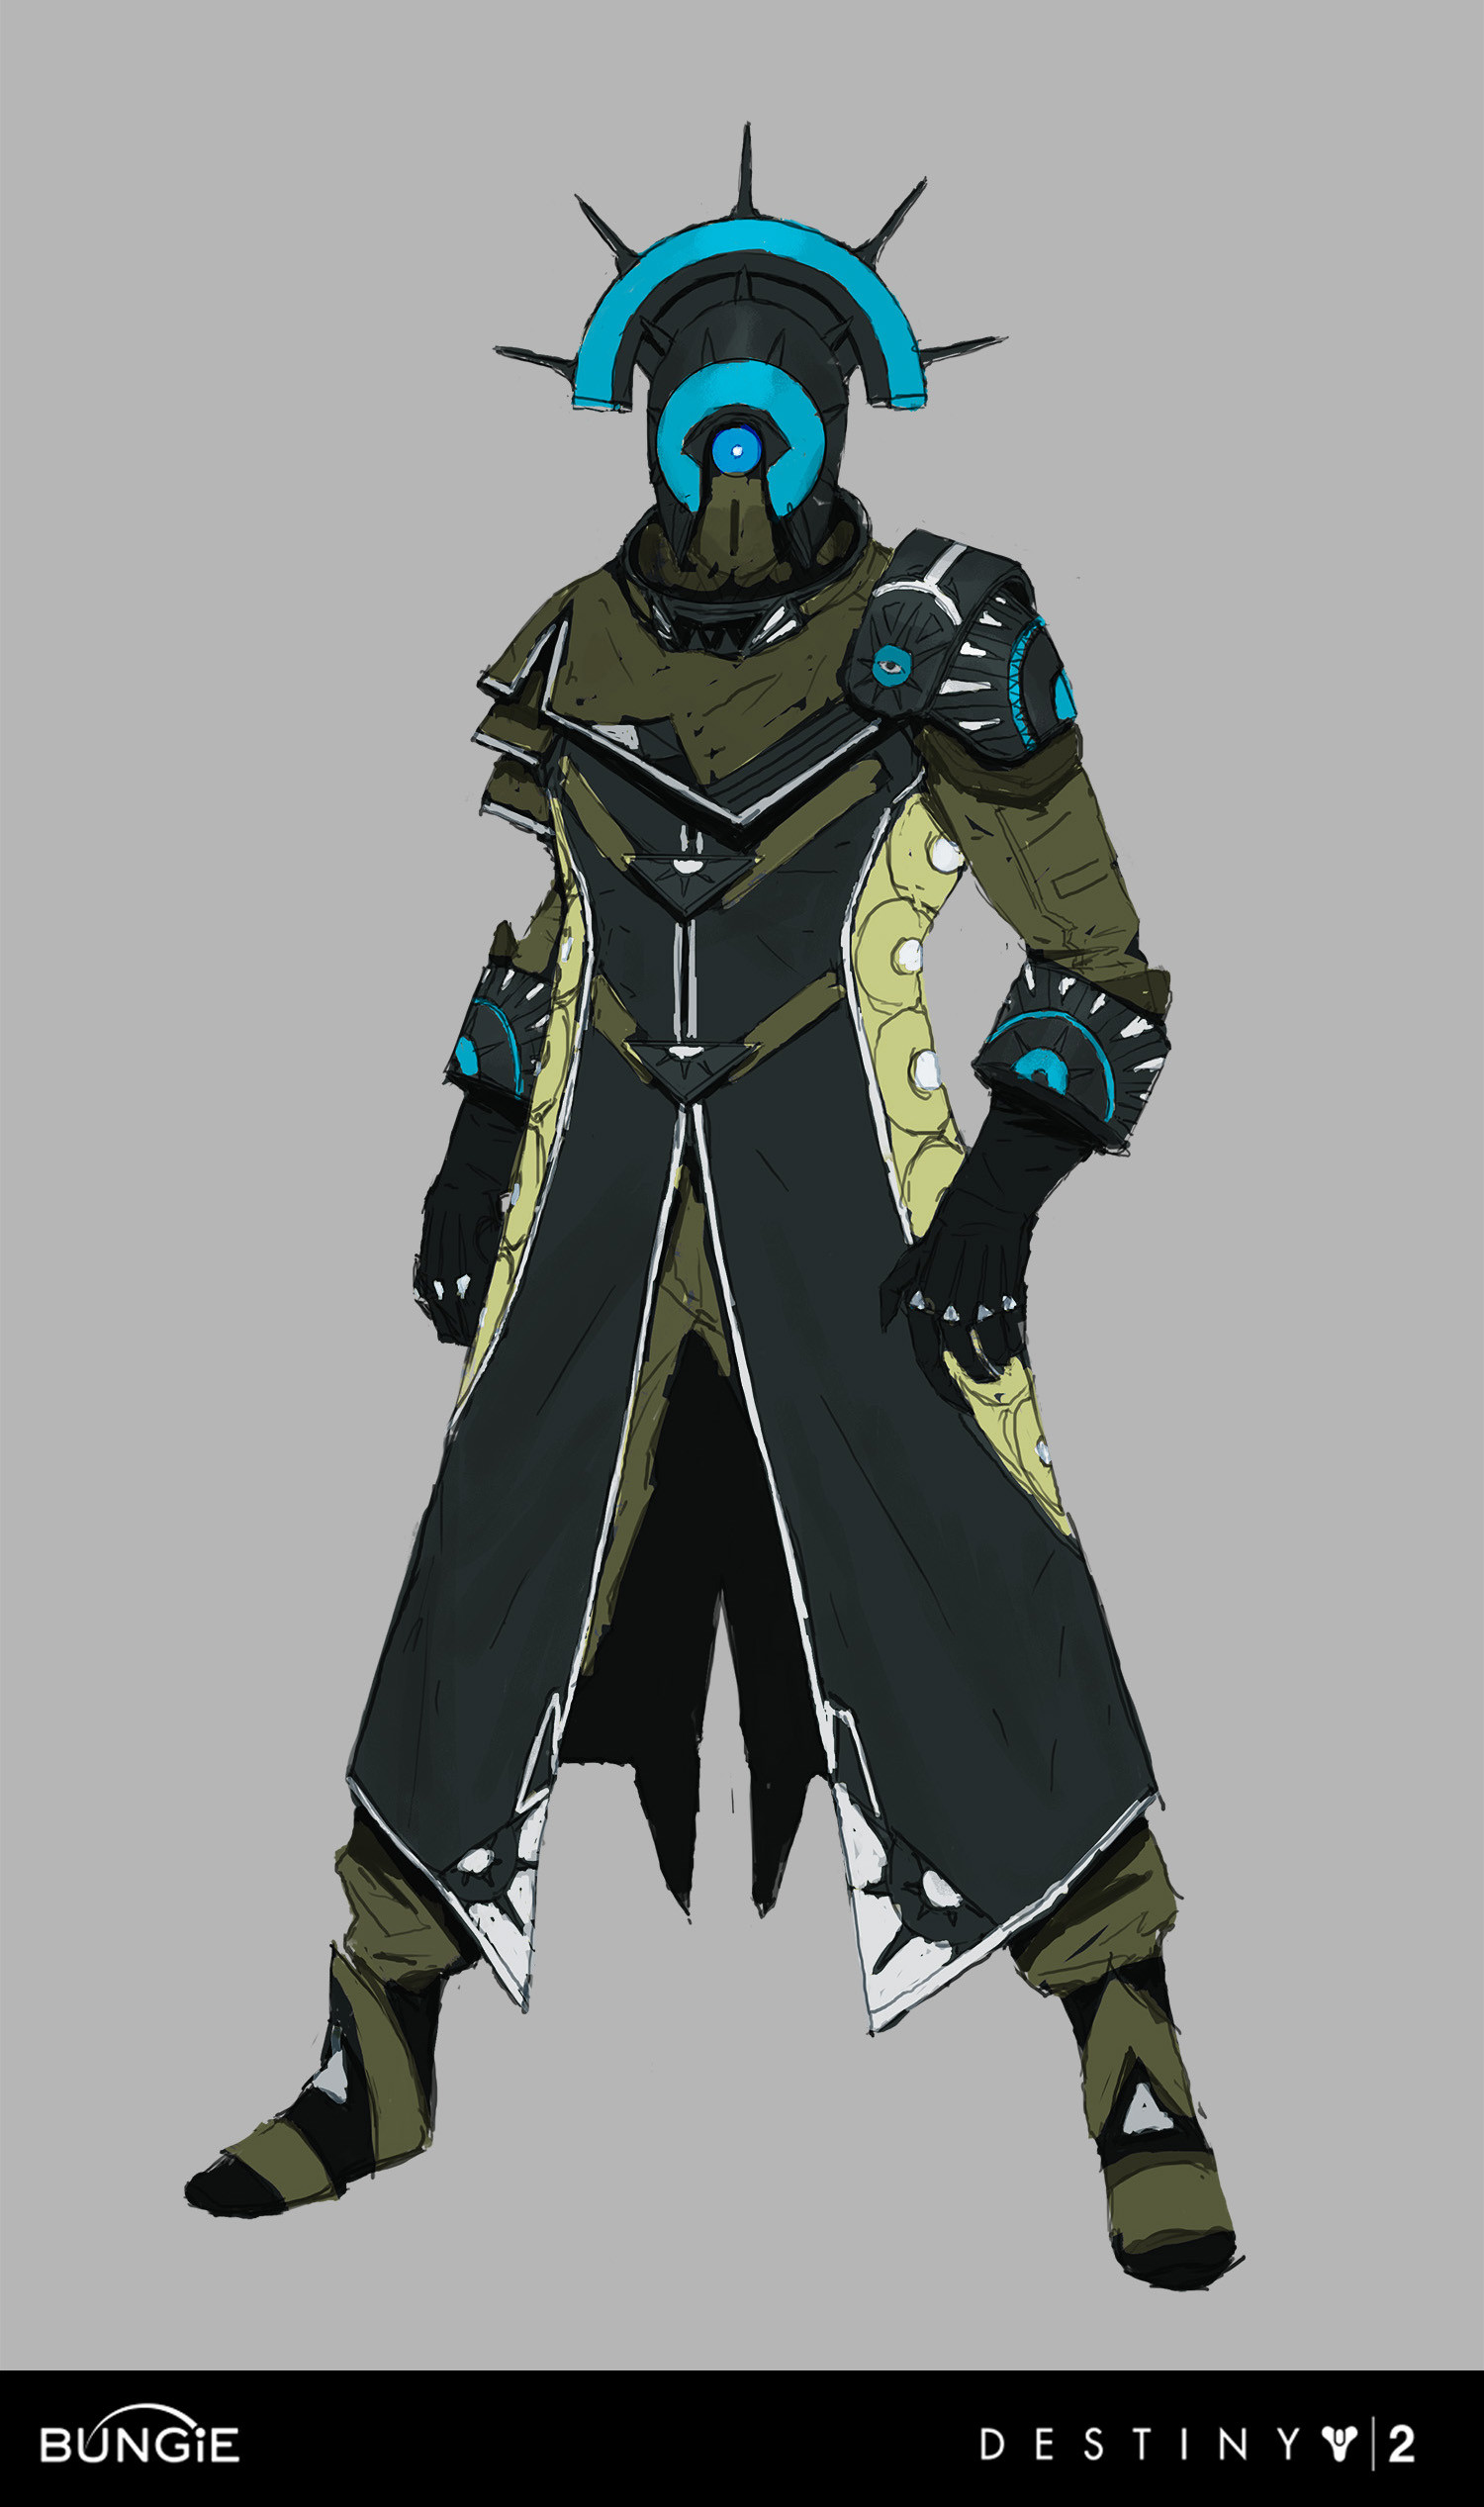 Destiny-2-Curse-of-Osiris-Concept-Art-Ryan-Gitter-infinite